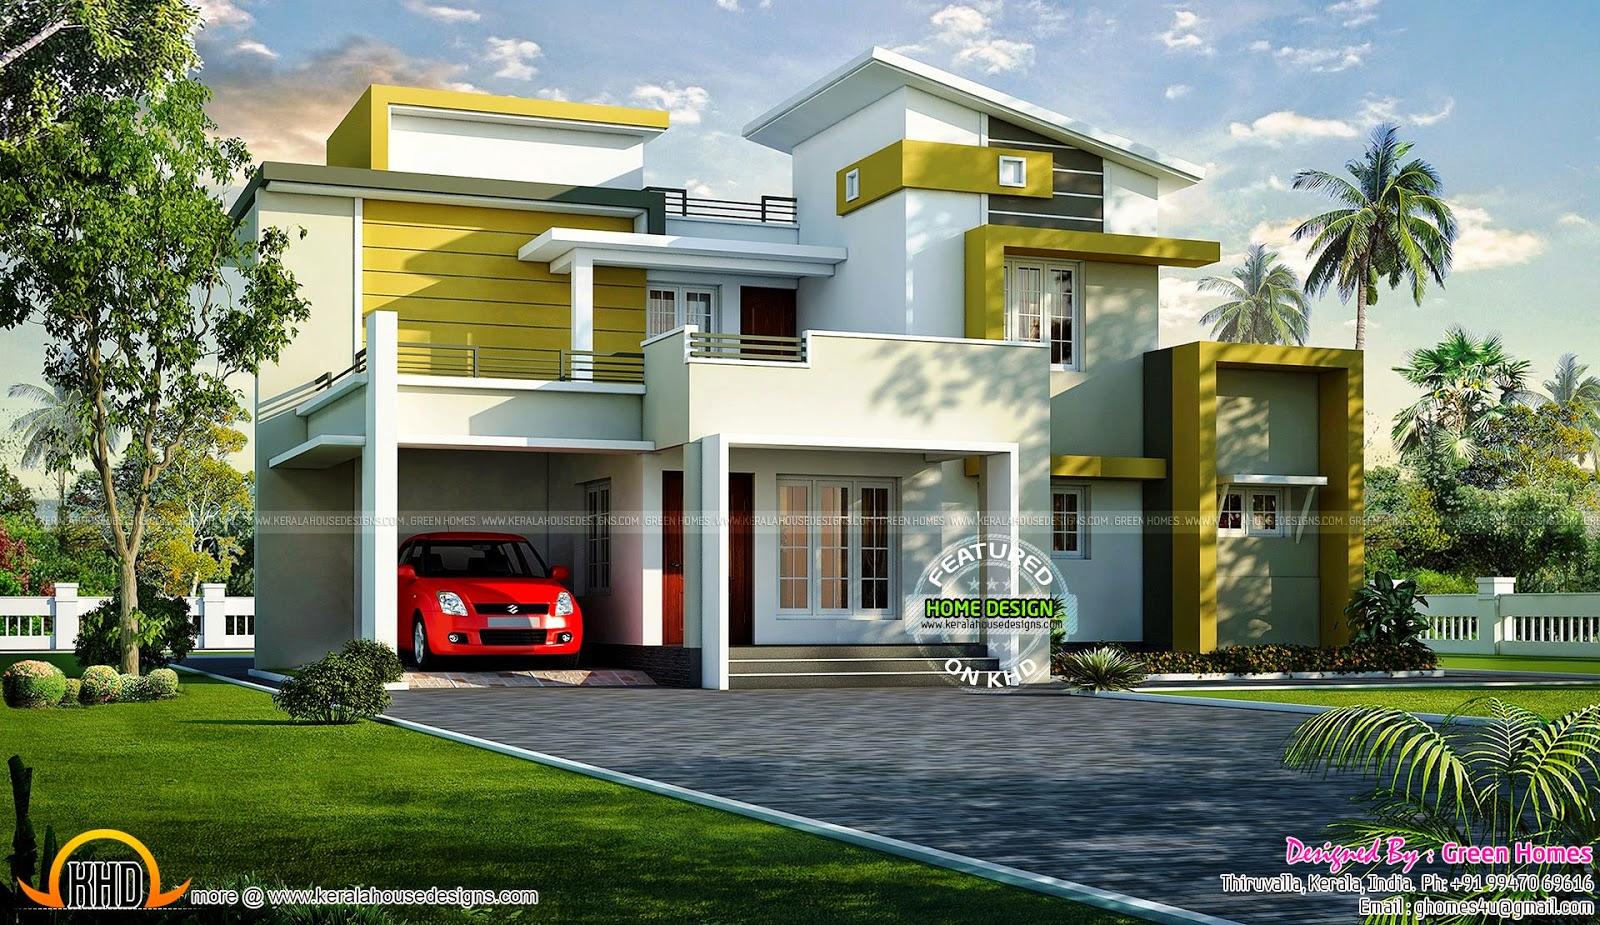 india bungalow exterior keralahousedesigns